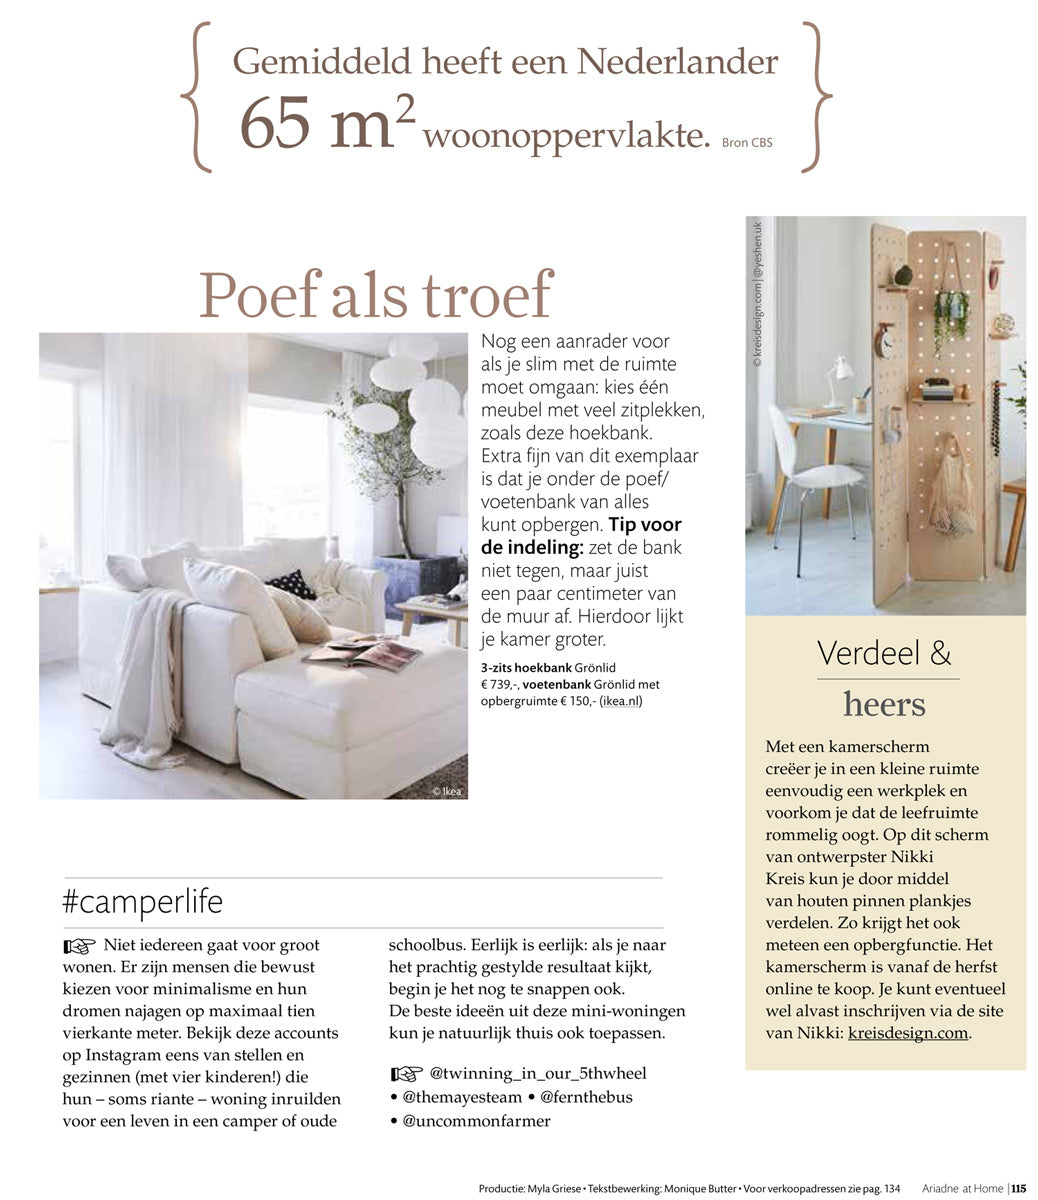 Ariadne at home dutch magazine features nikki Kreis's pegboard screen room dividers made from birch plywood